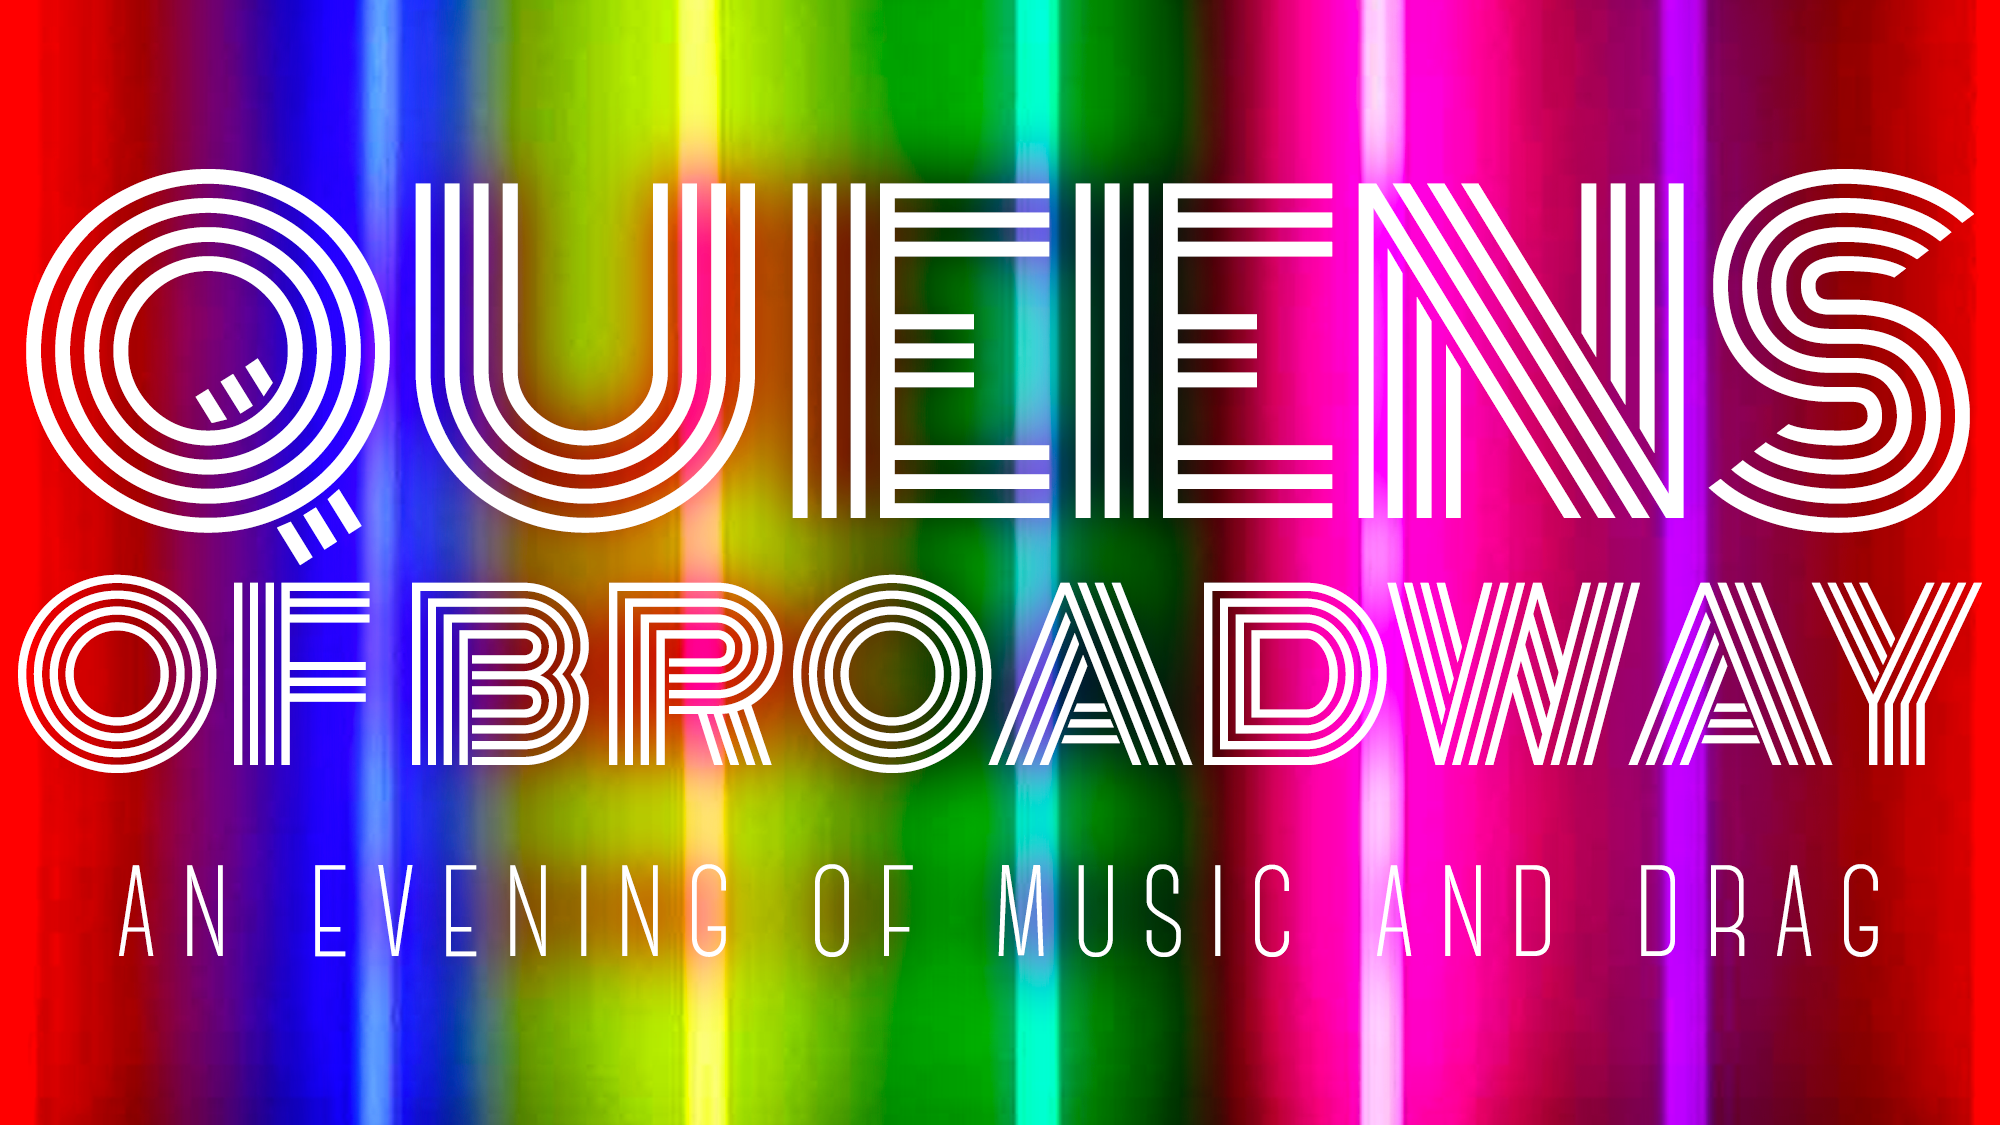 Queens of Broadway: An Evening of Music and Drag